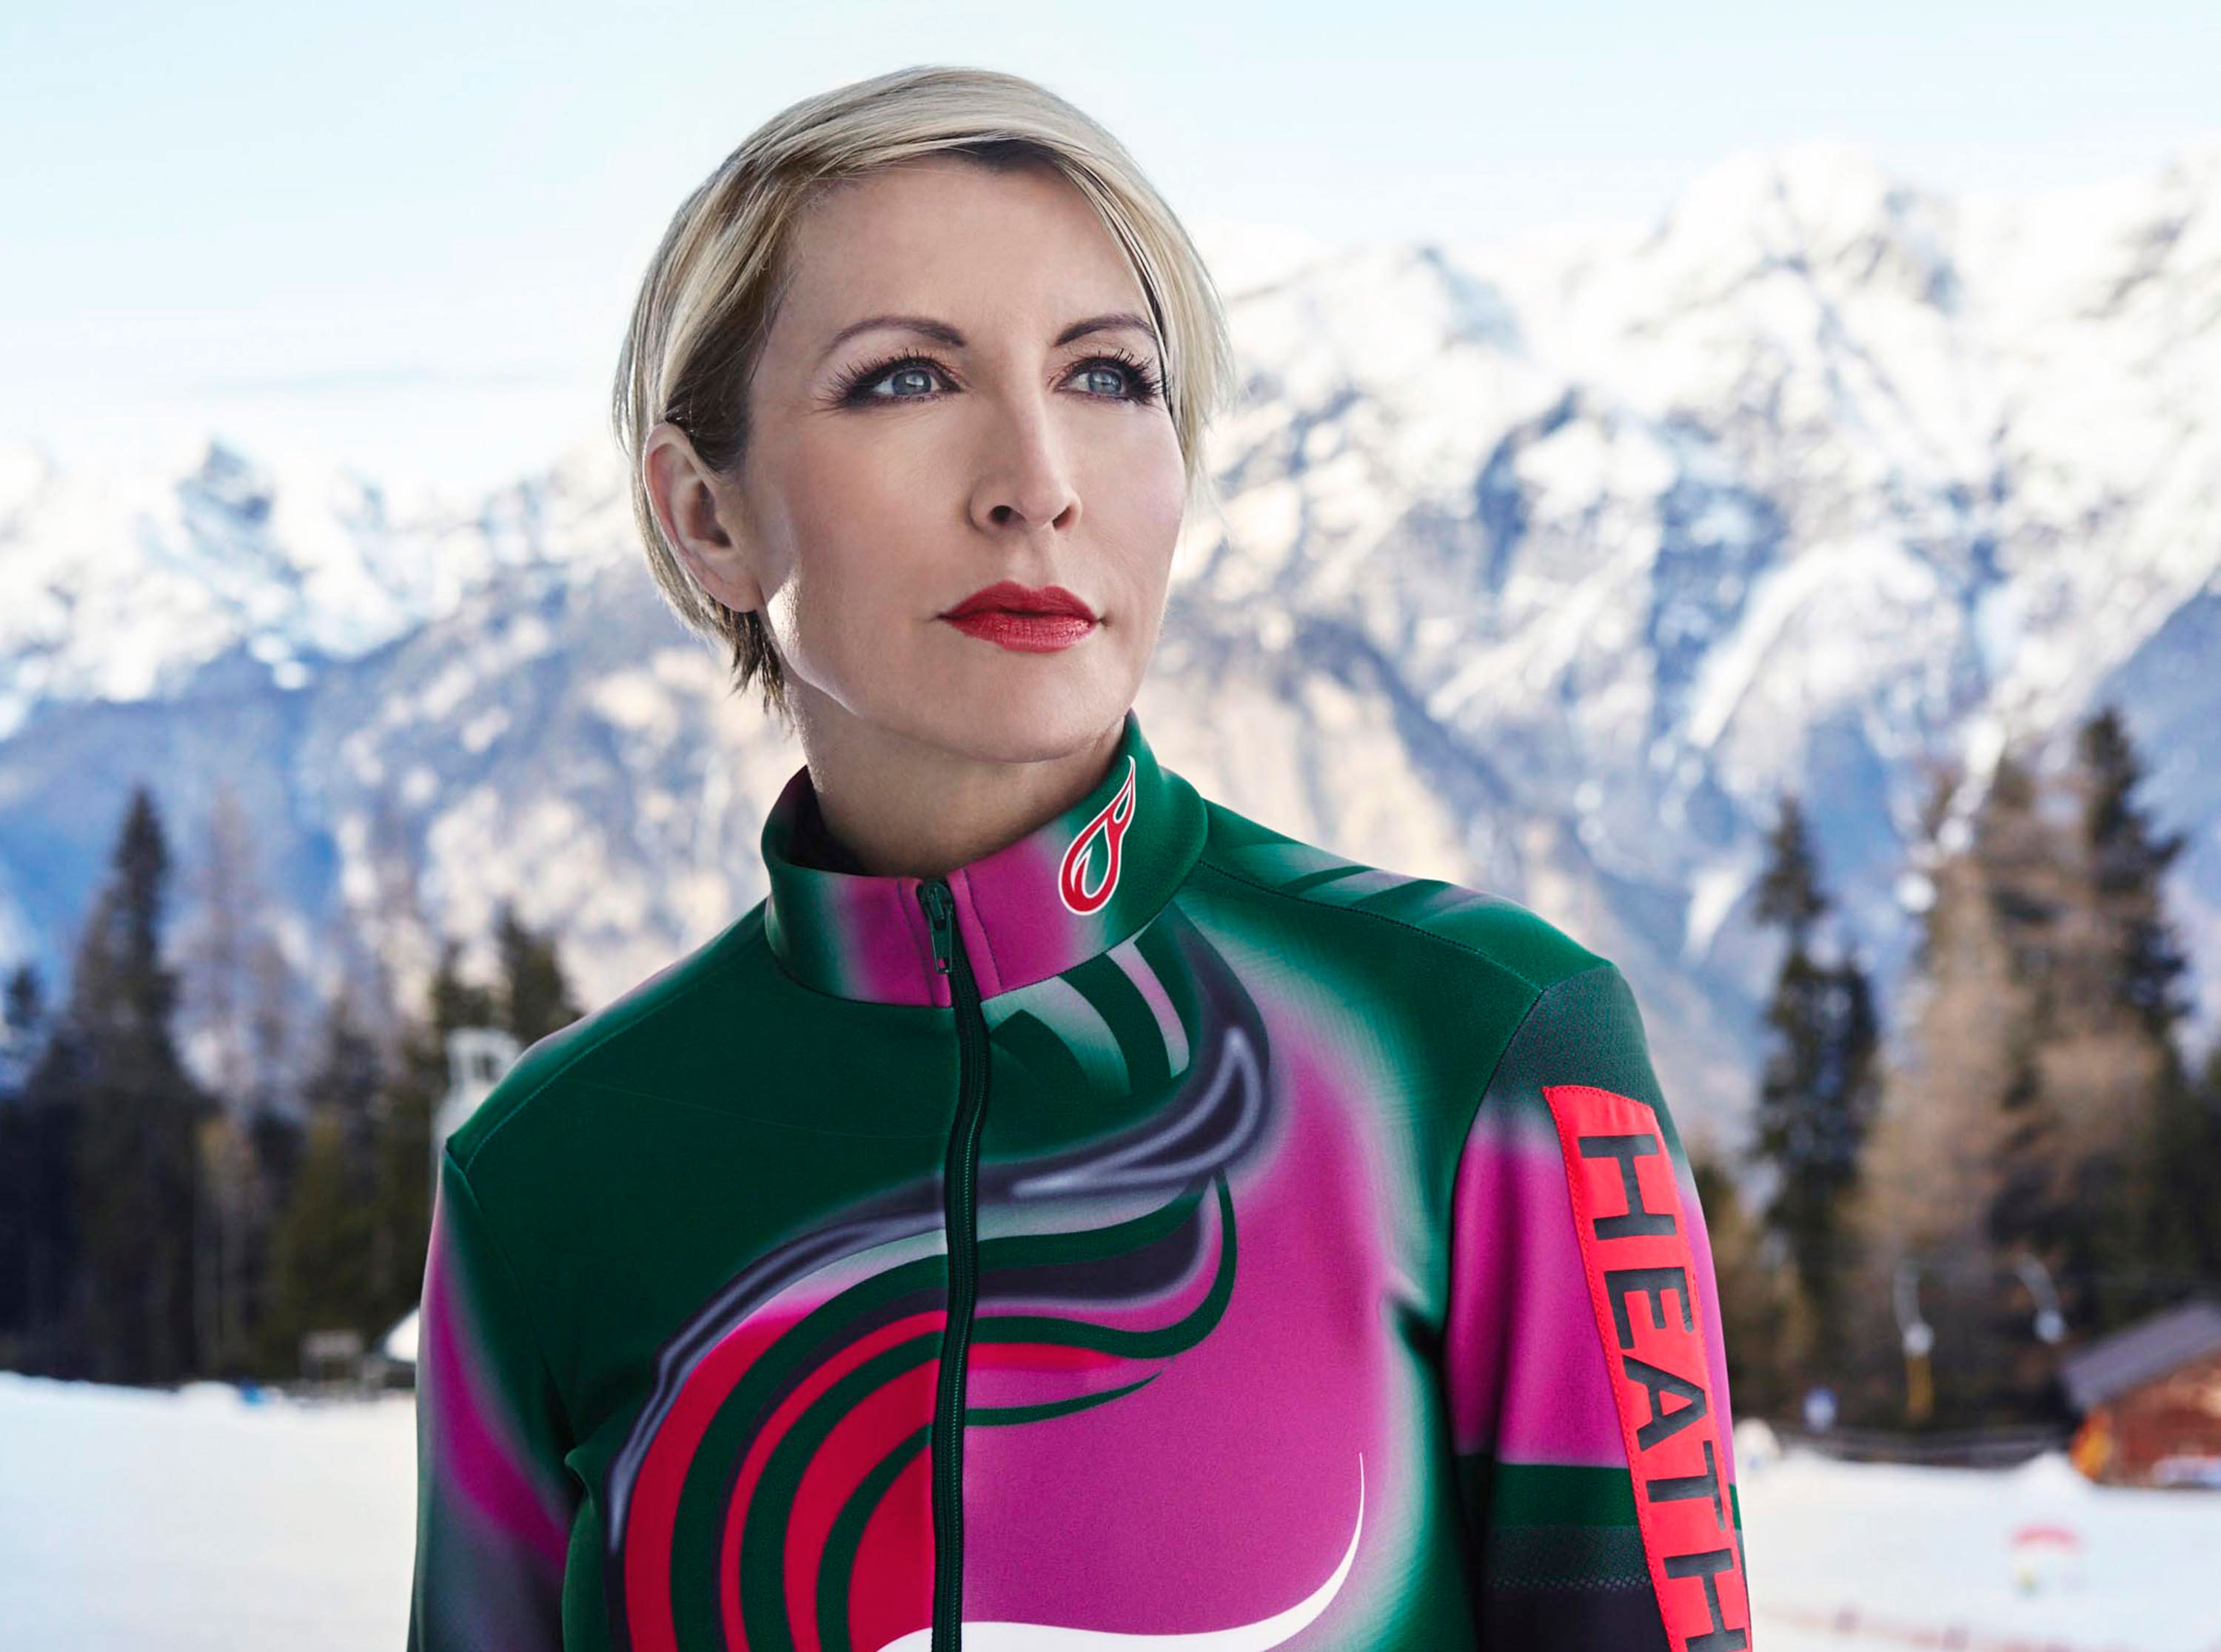 Heather Mills returns to The Jump as she replaces Rebecca Adlington